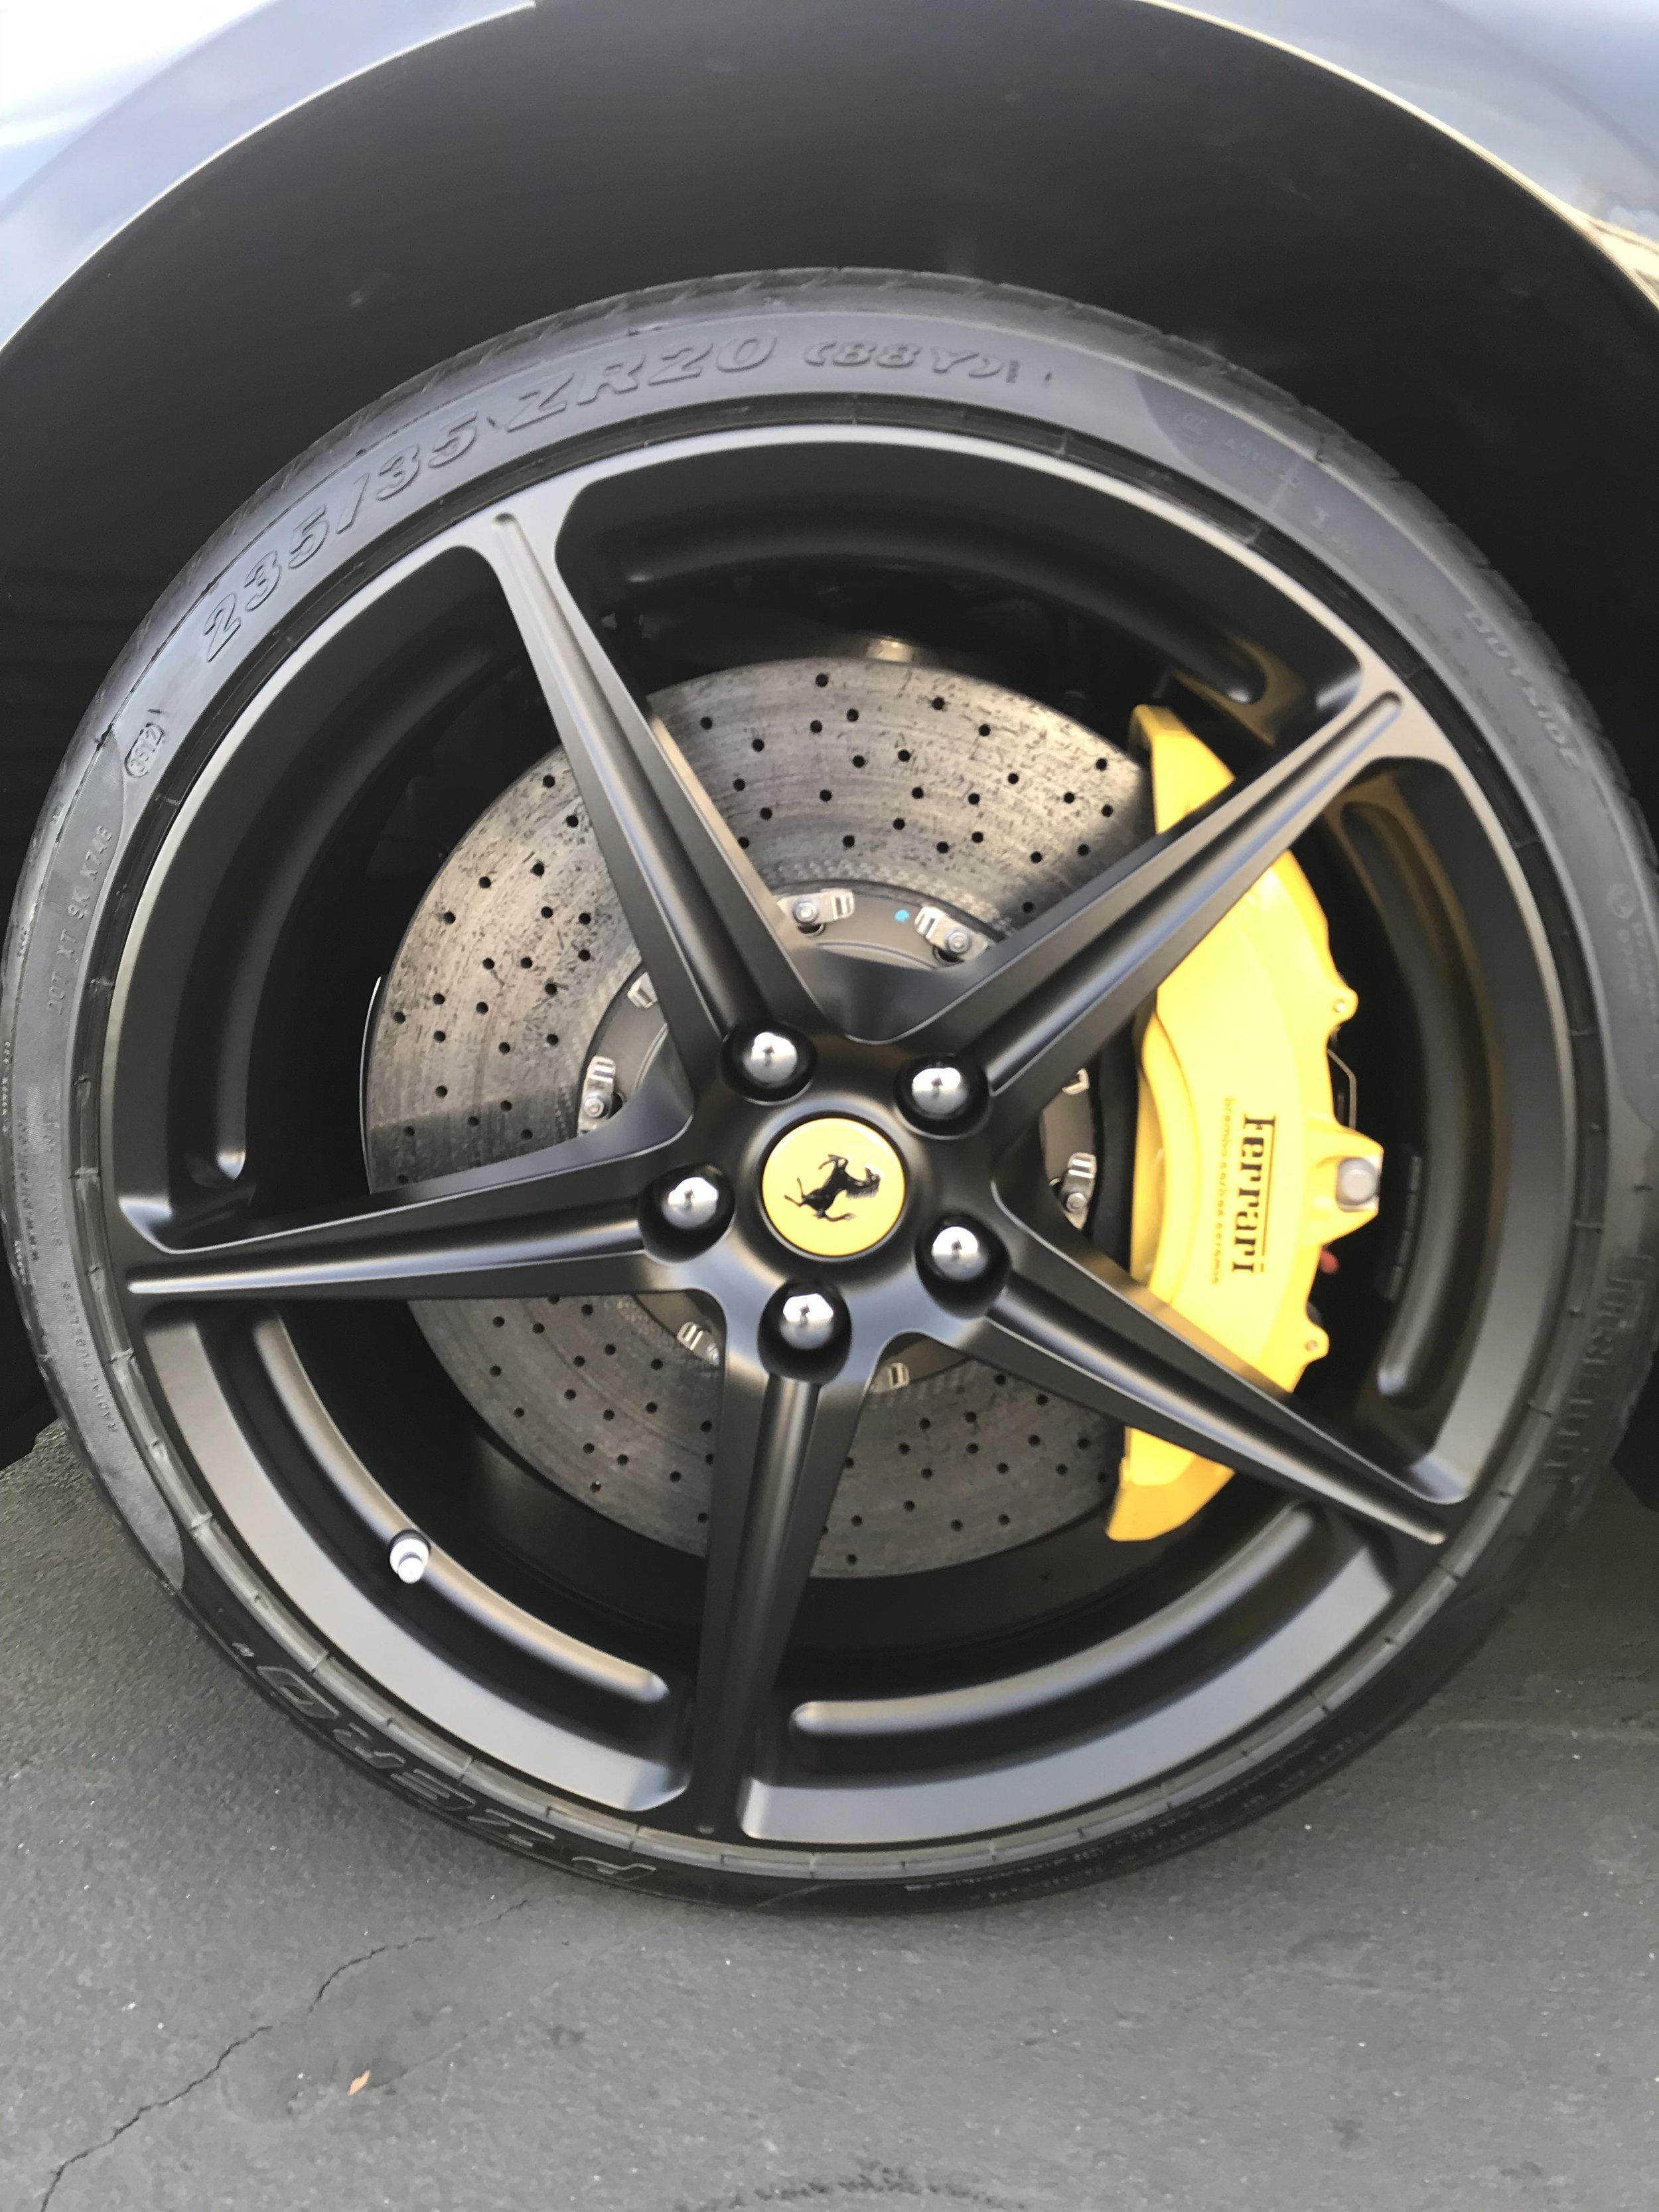 Ferrari 458 after wheel painting